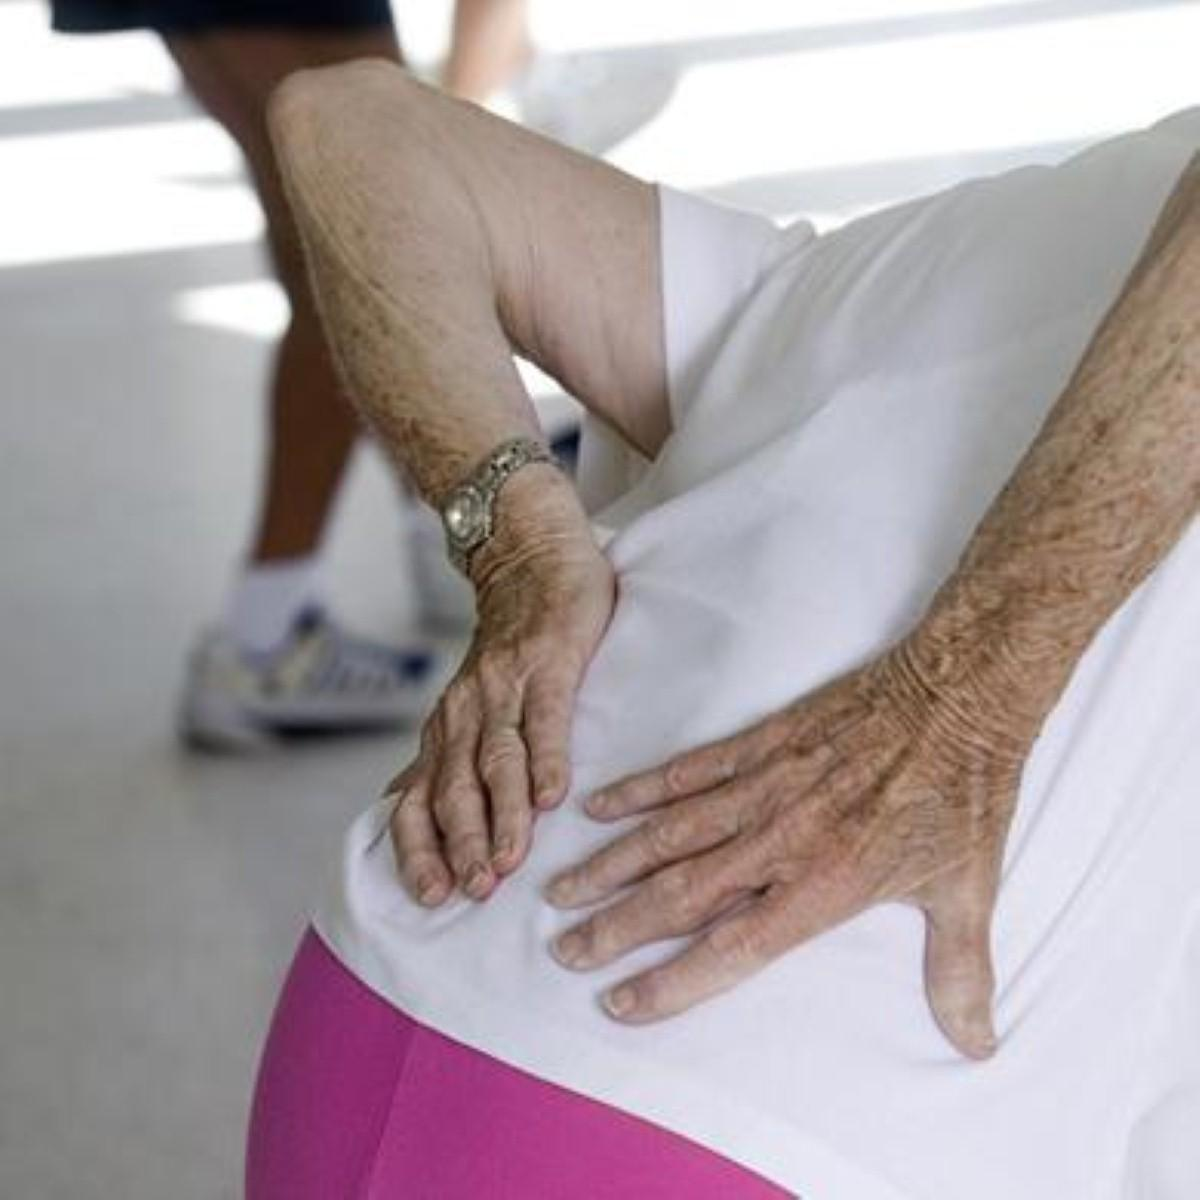 Osteoporosis drugs 'linked to slight chance of jaw disease'